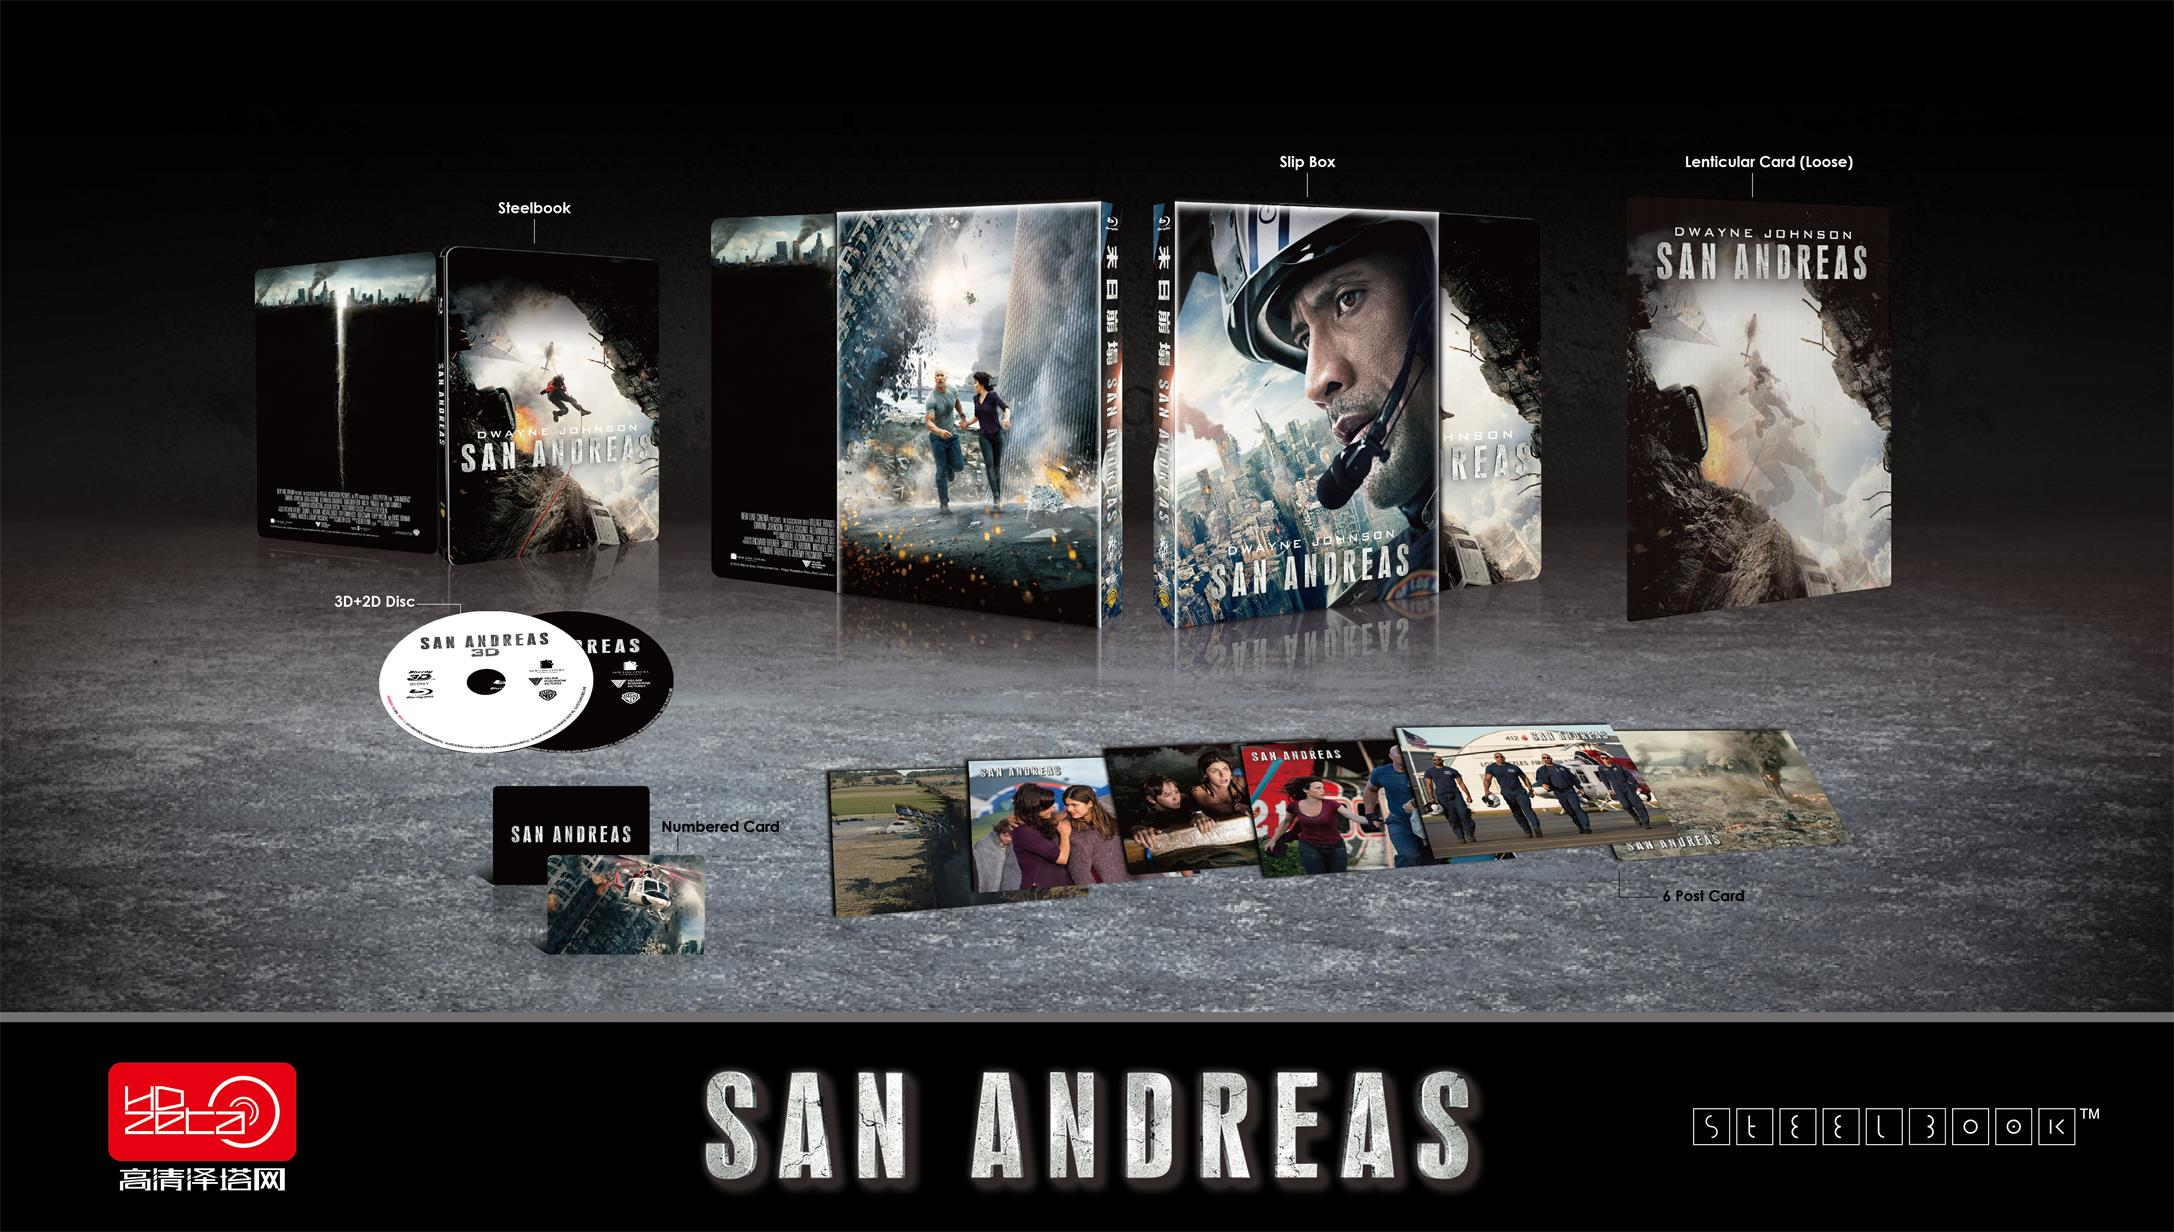 San Andreas---HDzeta Special Edition Sliver Label No.9